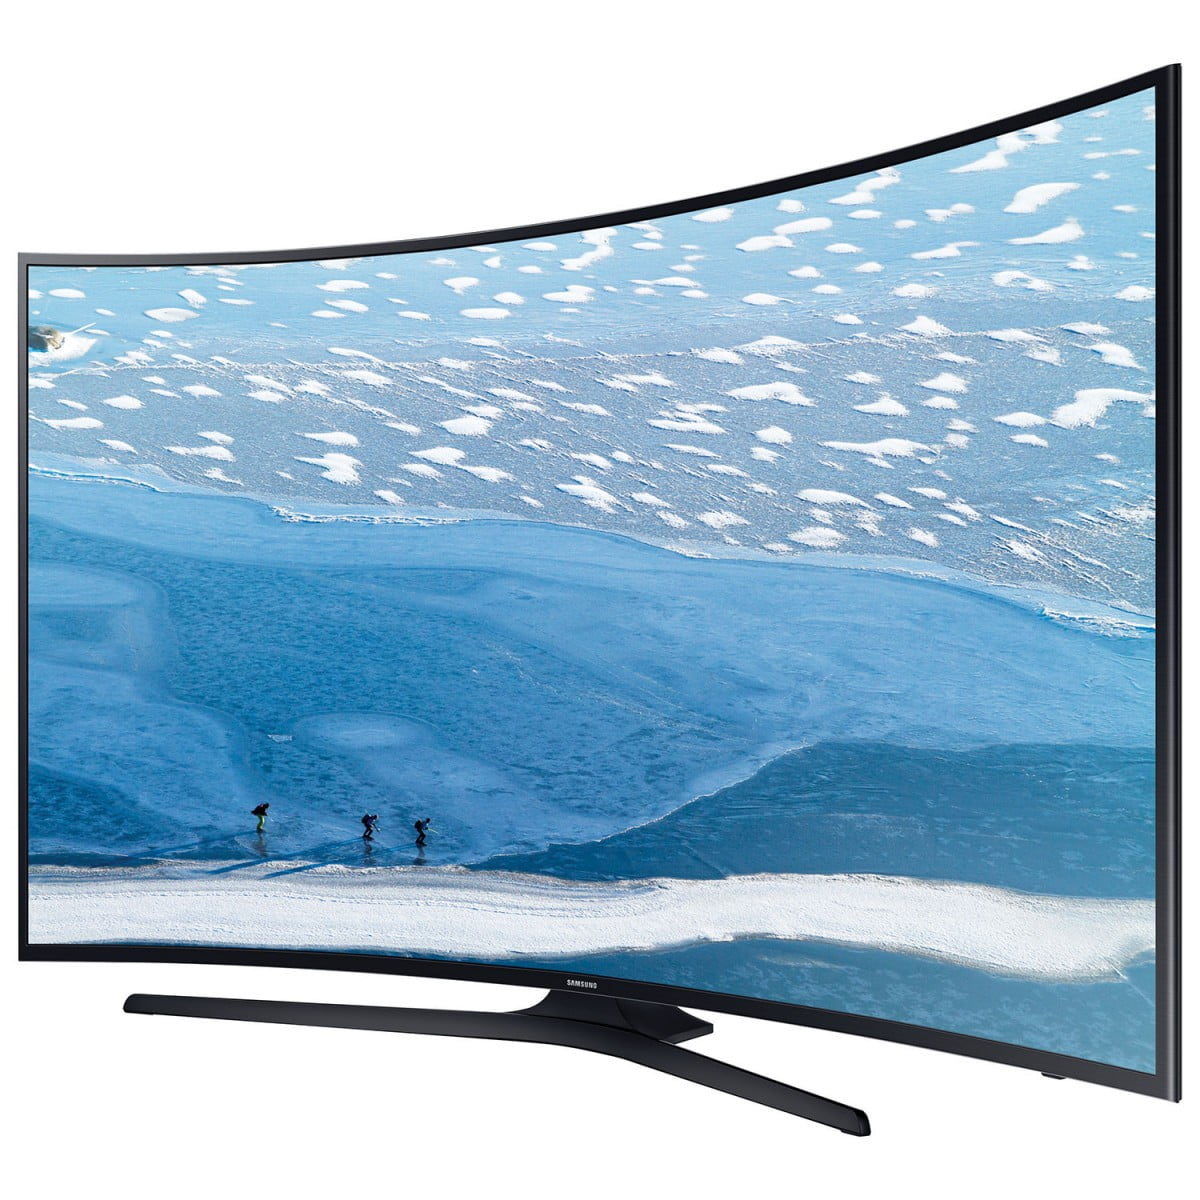 samsung un55ku6490 55 4k ultra hd curved led smart tv open box 1 ony gibbys electronic. Black Bedroom Furniture Sets. Home Design Ideas